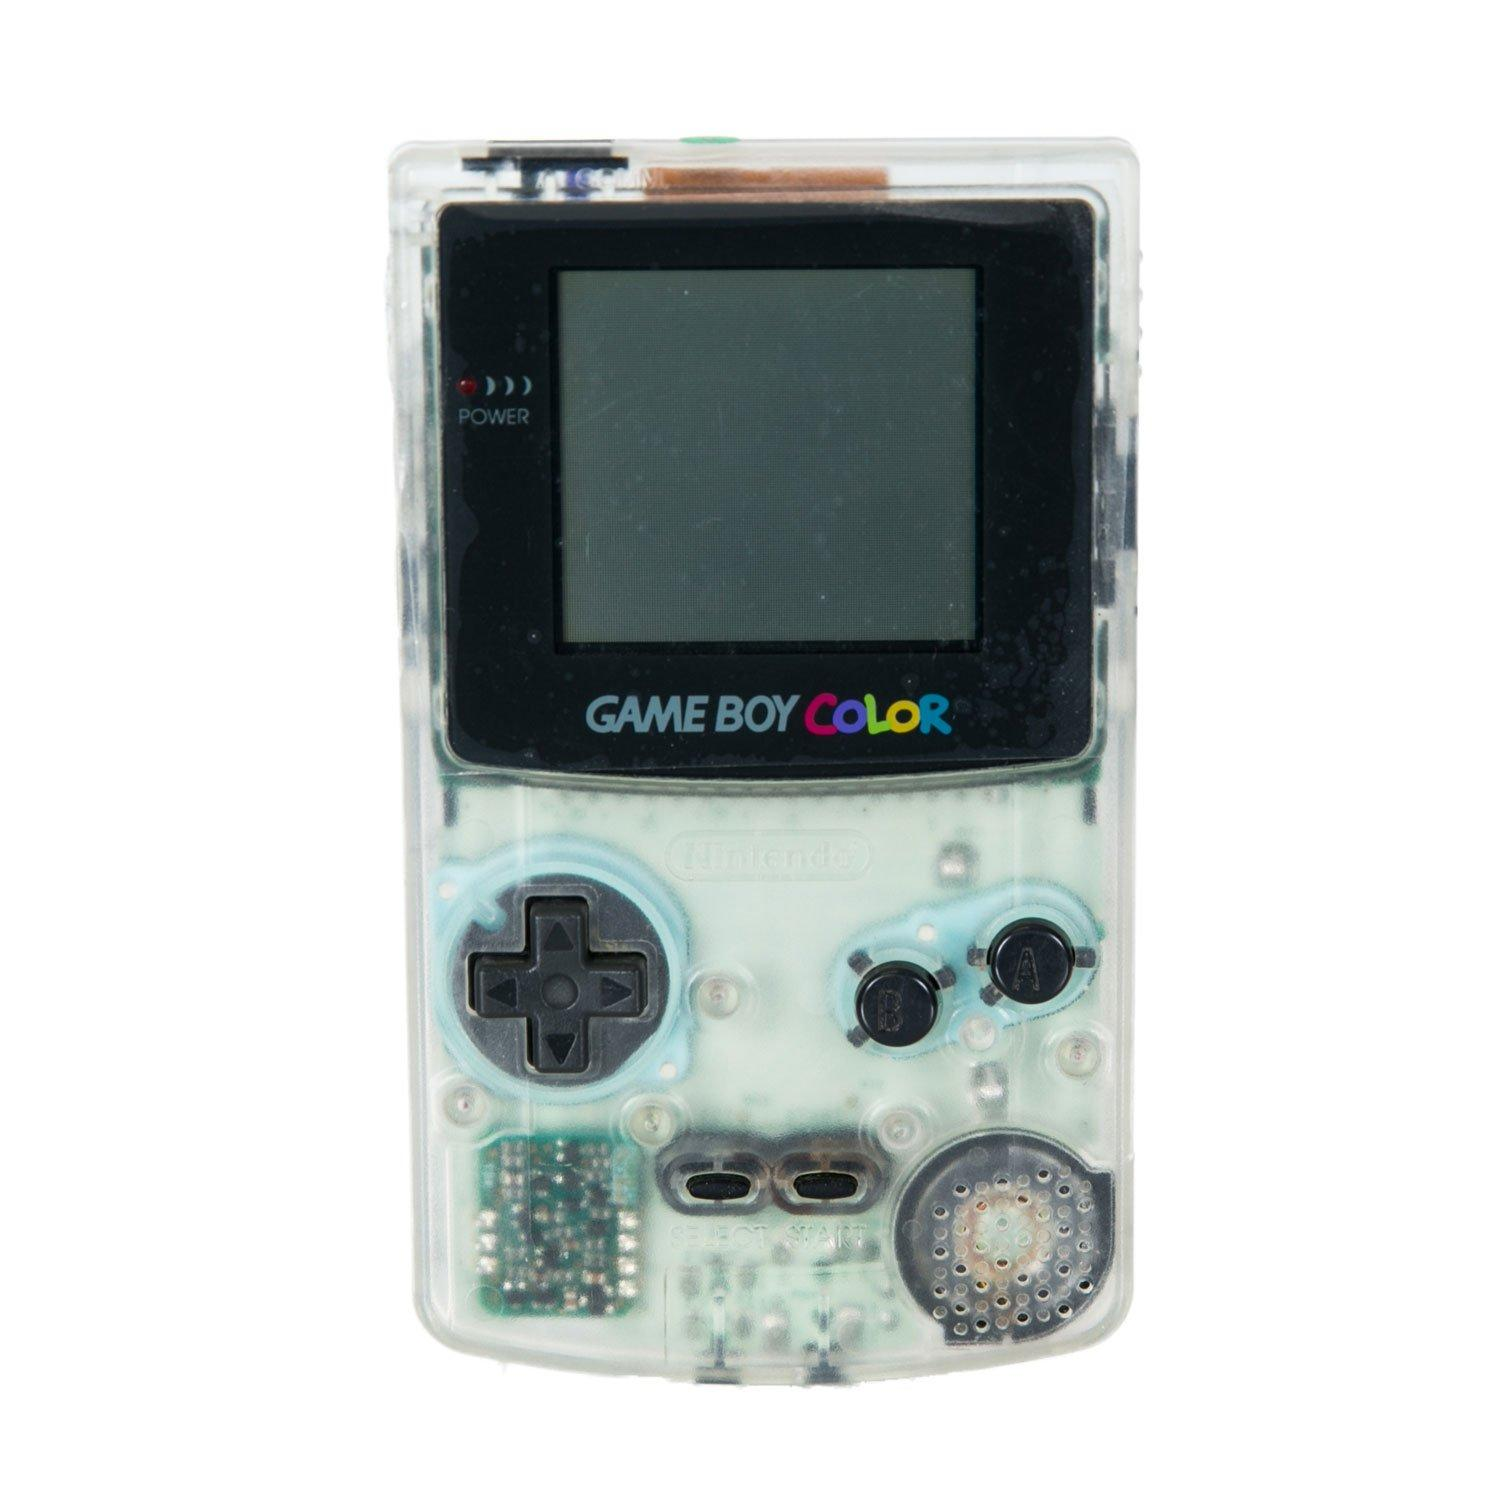 Game Boy Color Clear Ice Gamestop Premium Refurbished